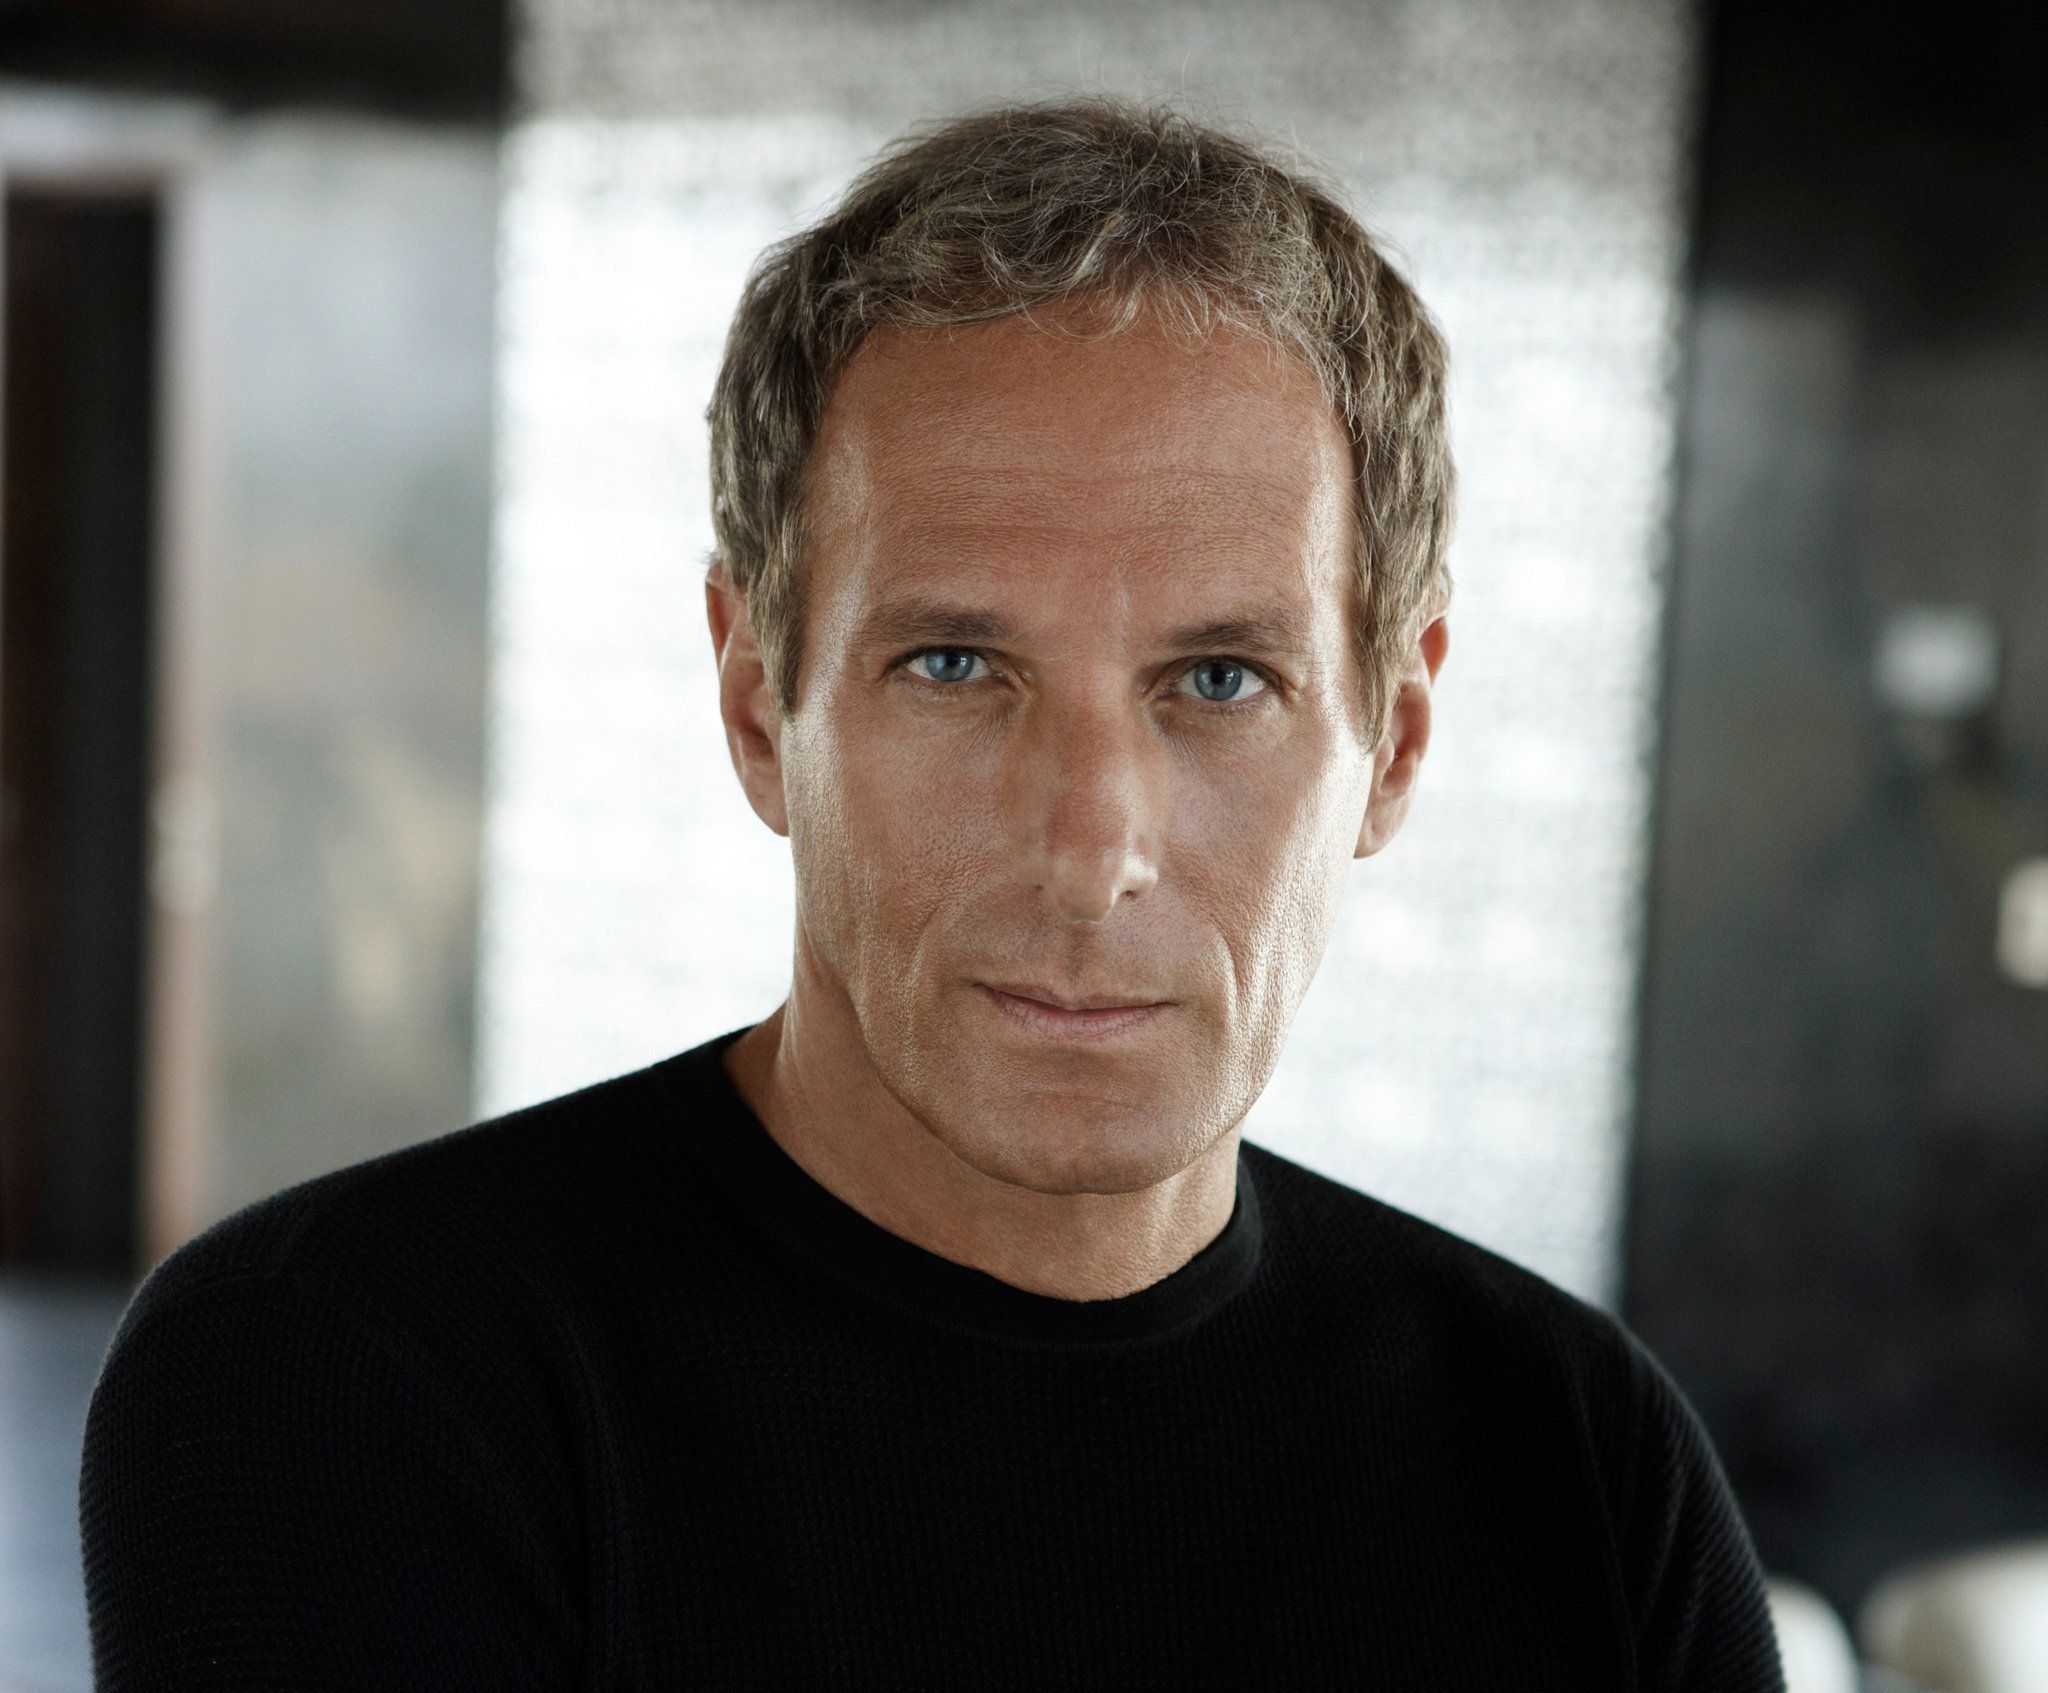 Michael Bolton Hd Wallpaper